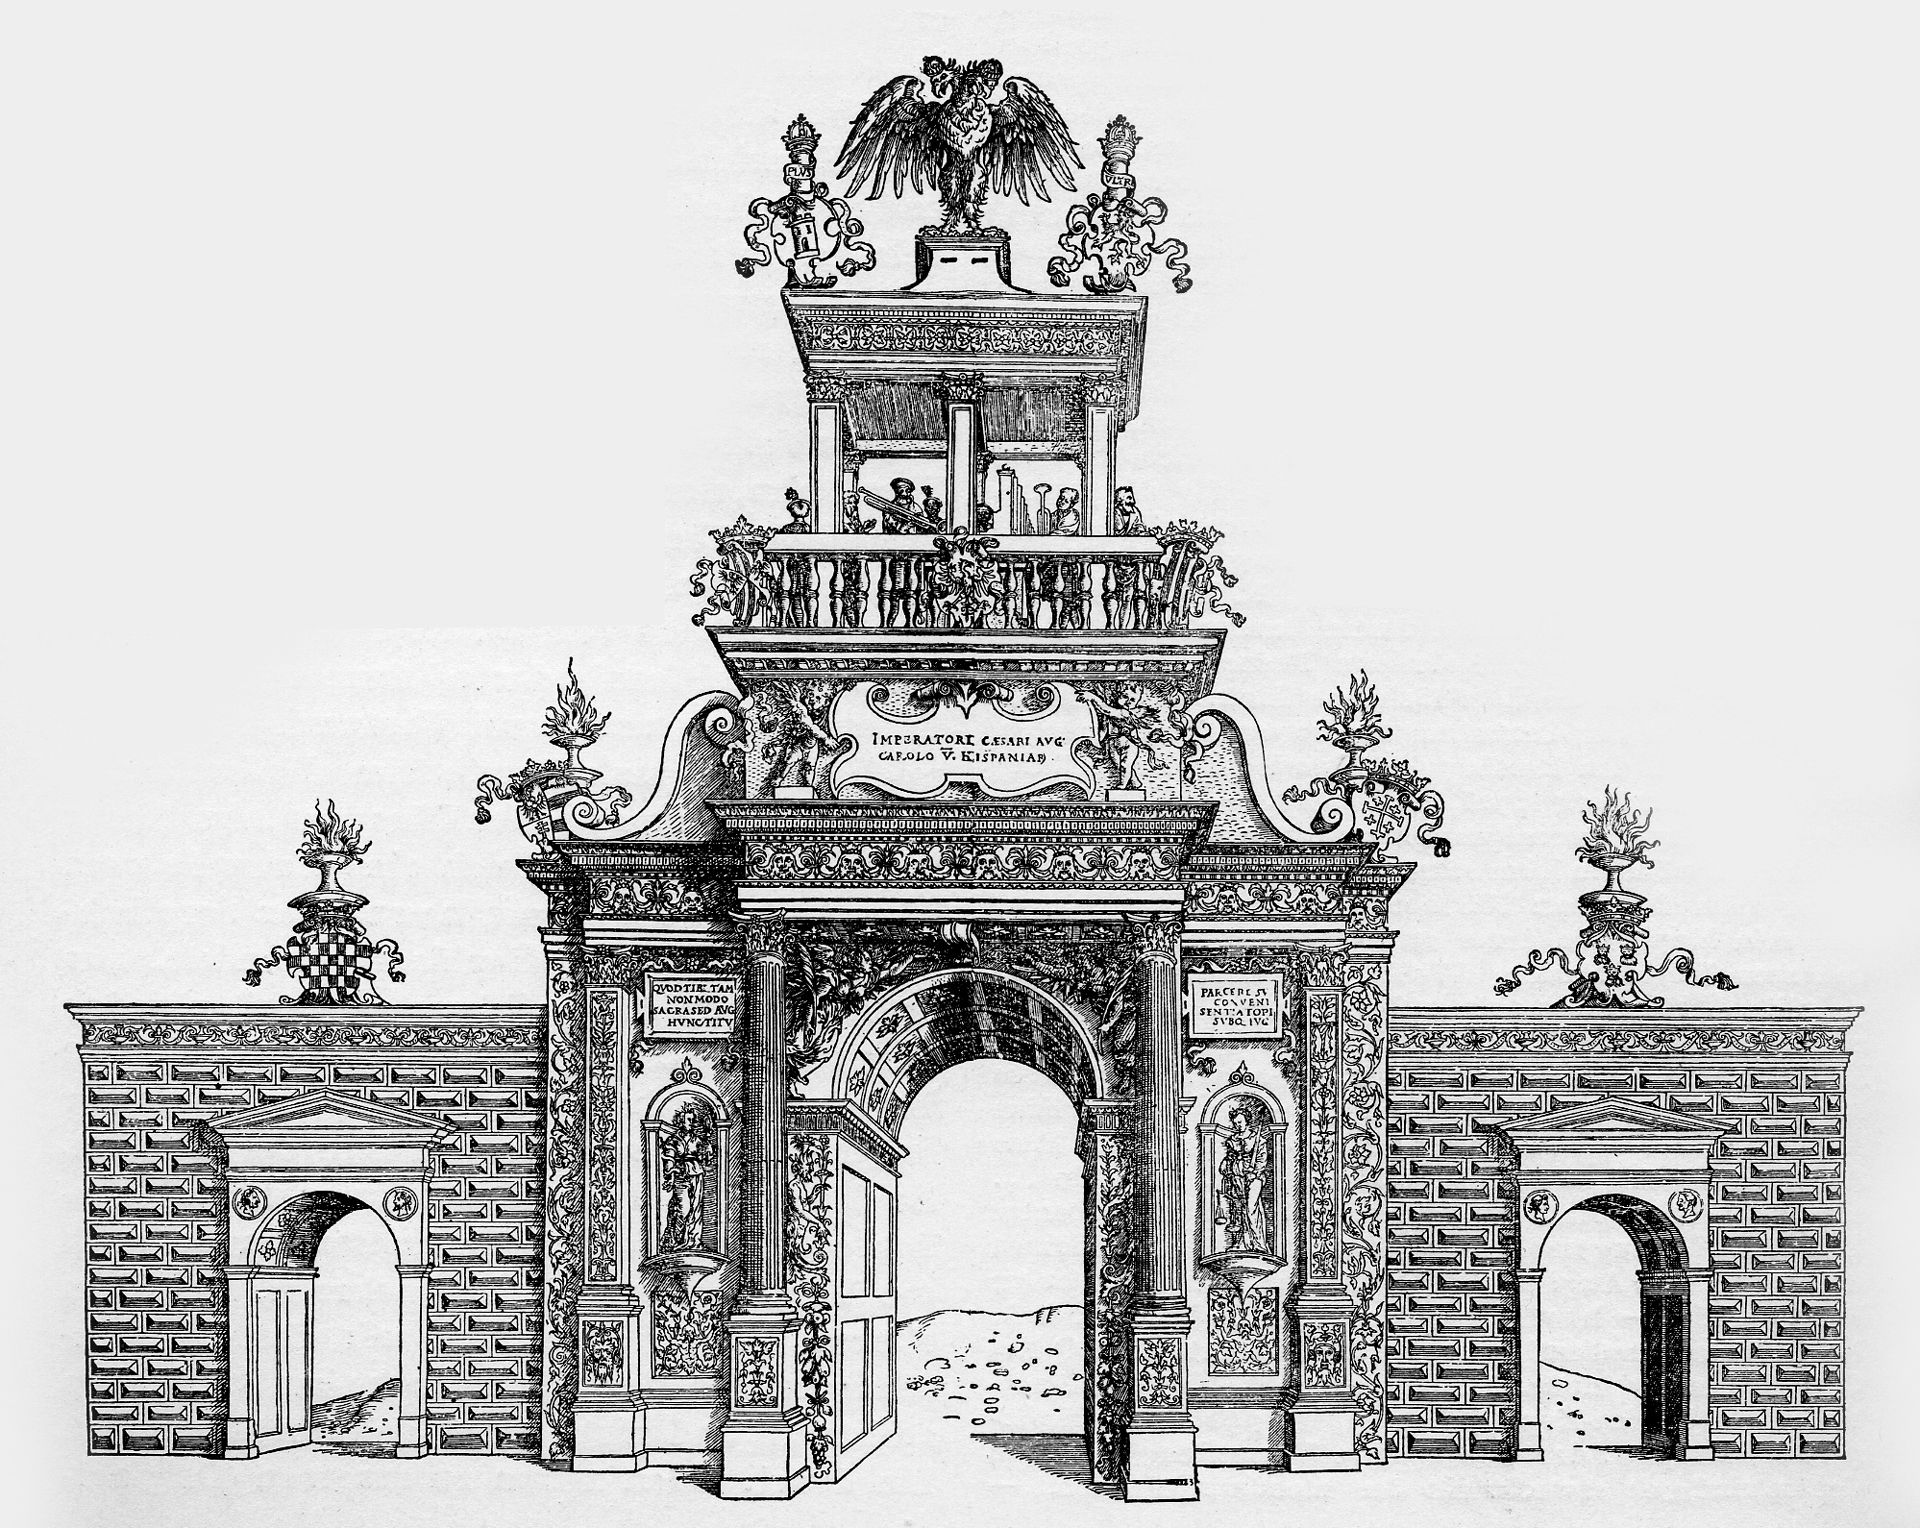 Triumphal Arch for Charles V Triumphal arch for Charles V